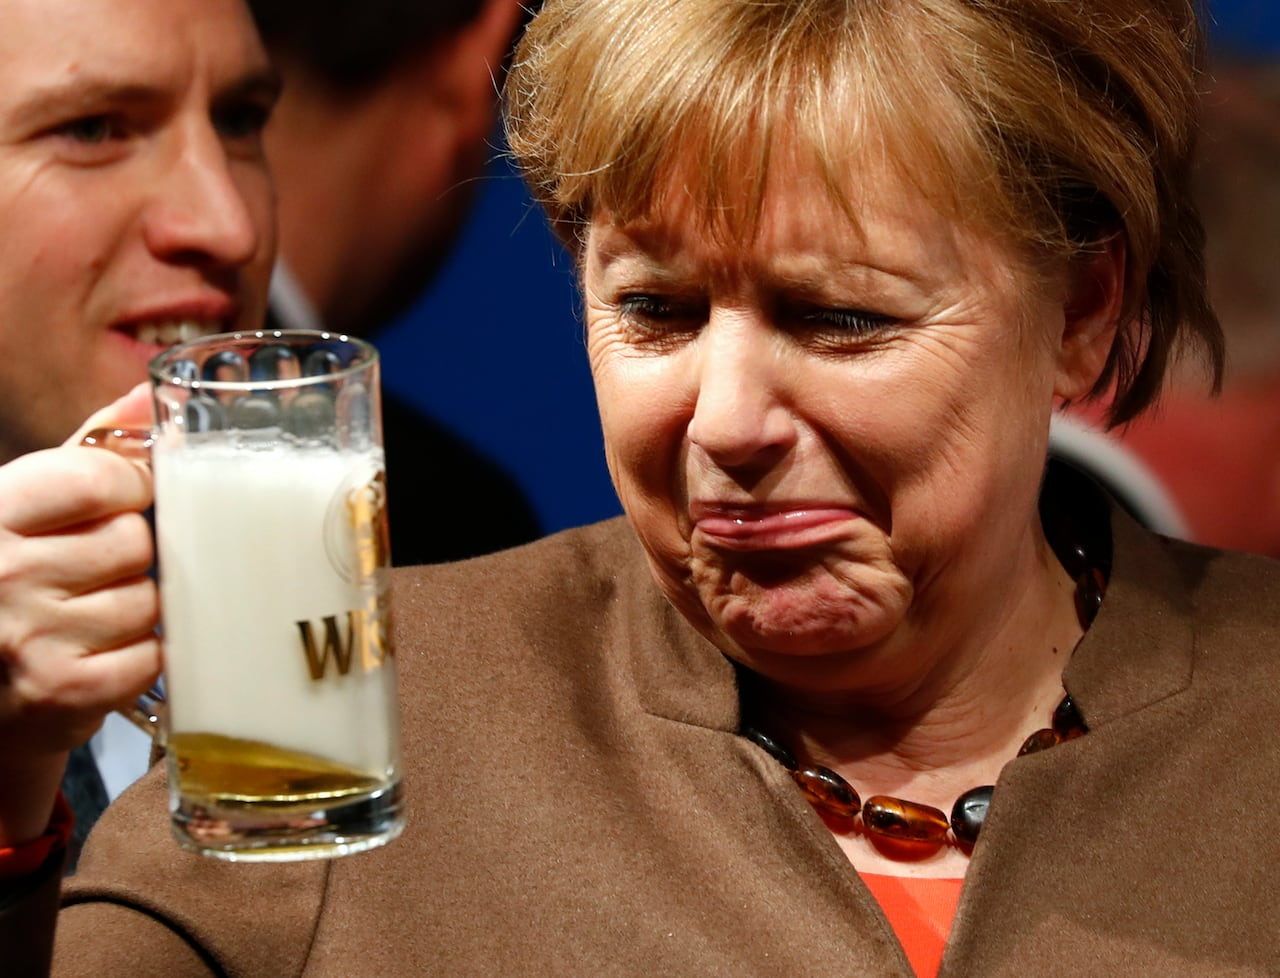 Astronauts return to Earth, Angela Merkel drinks a beer and Oscars ...